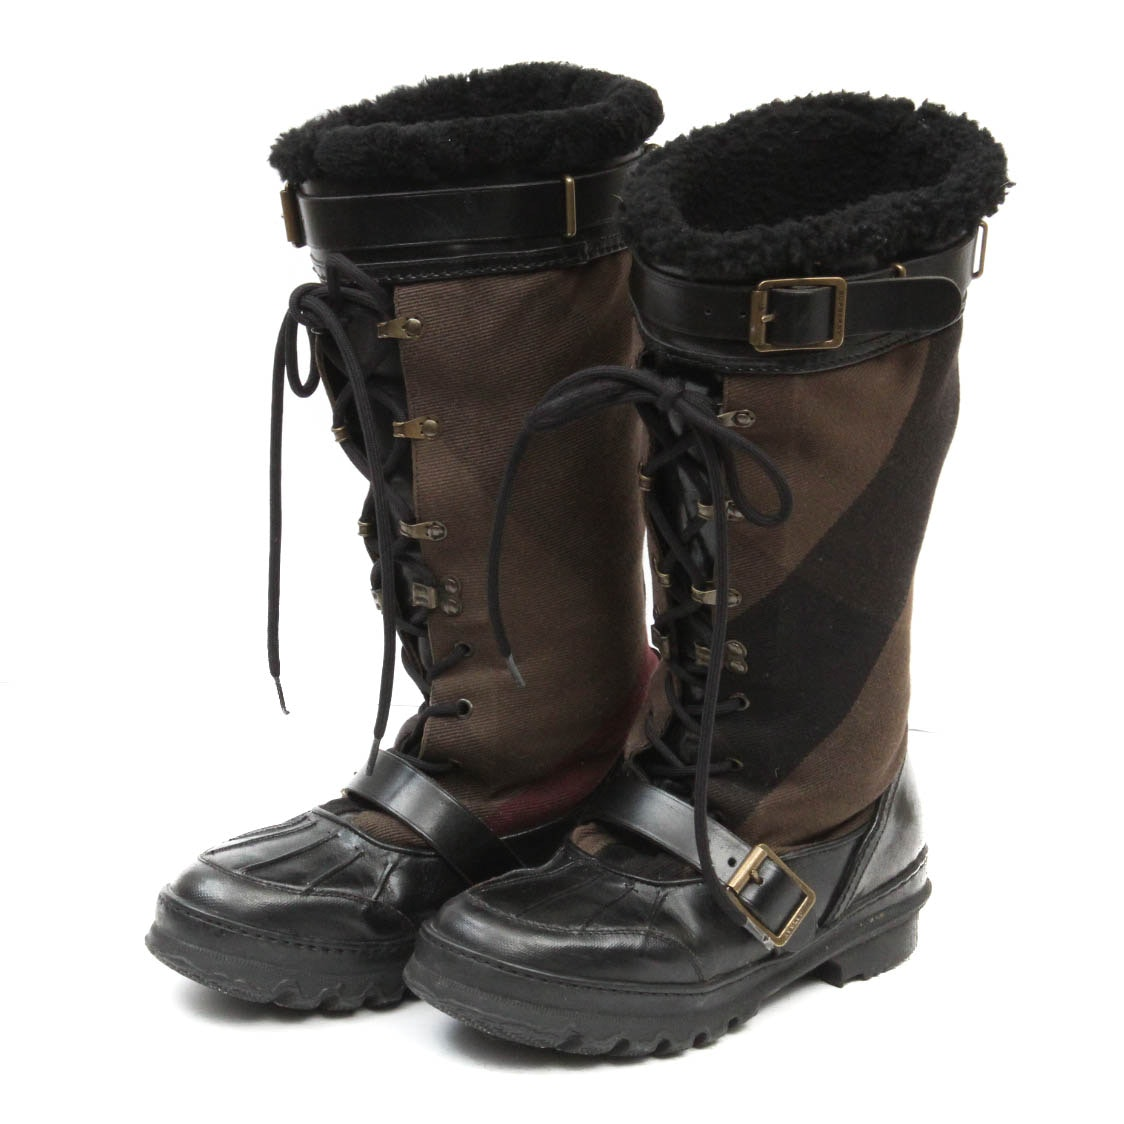 Burberry Lace Up Duck Boots